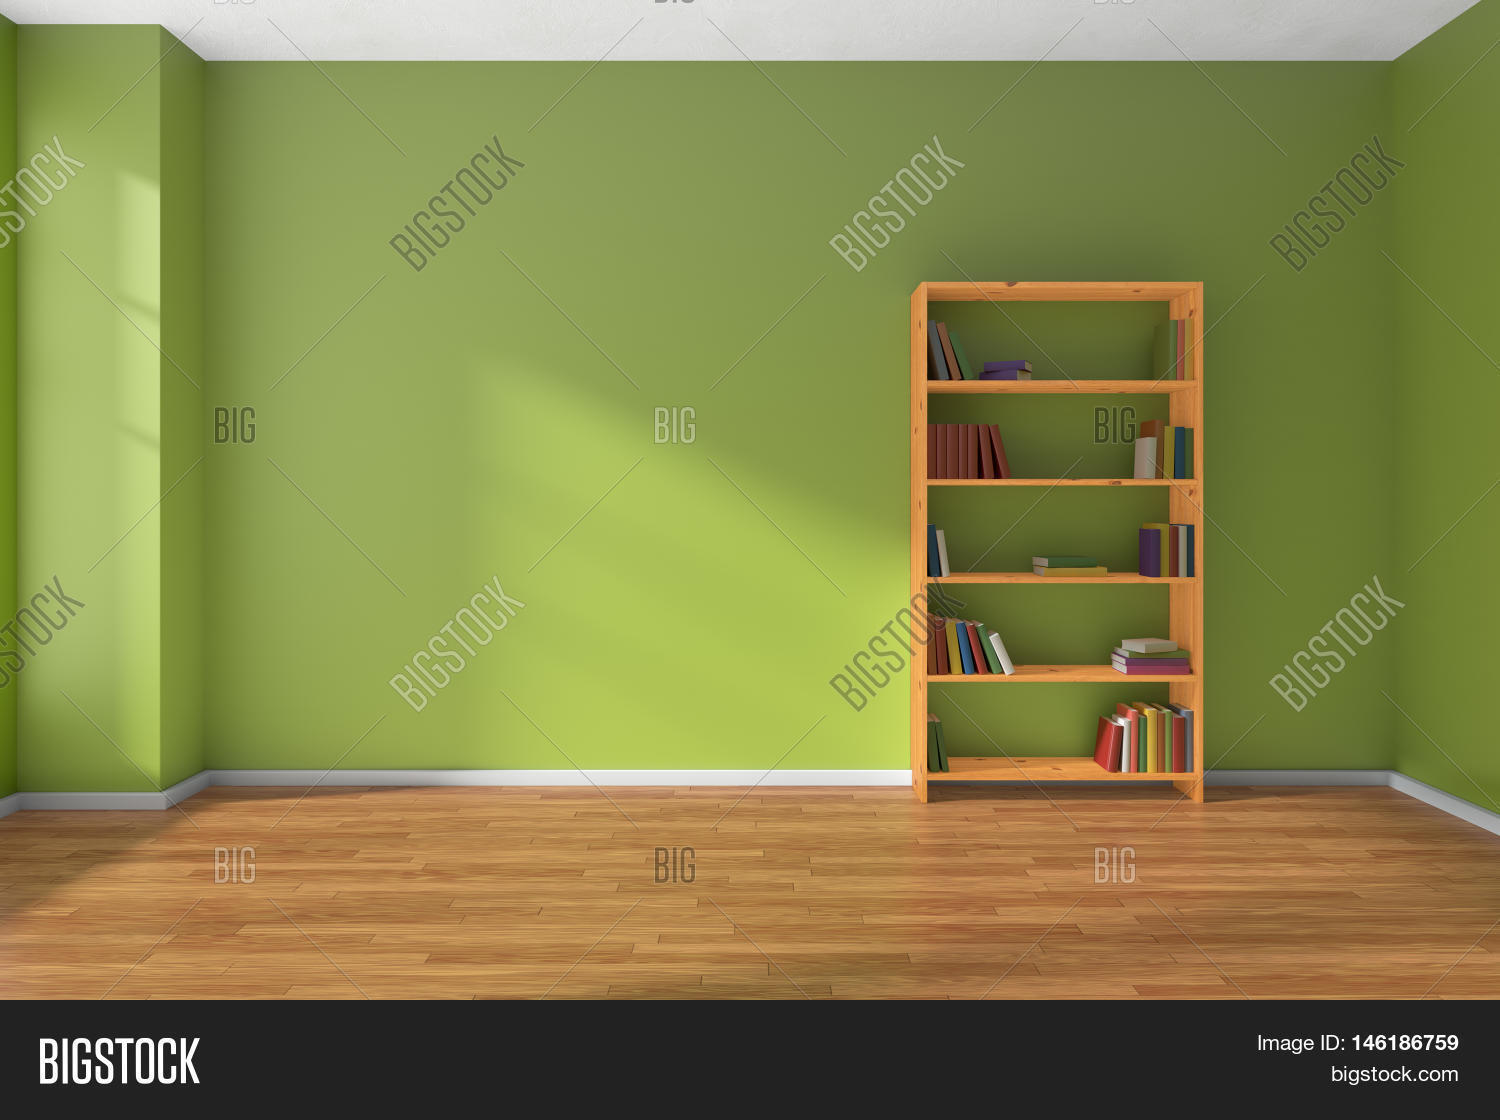 Empty Room Green Wall Image Photo Free Trial